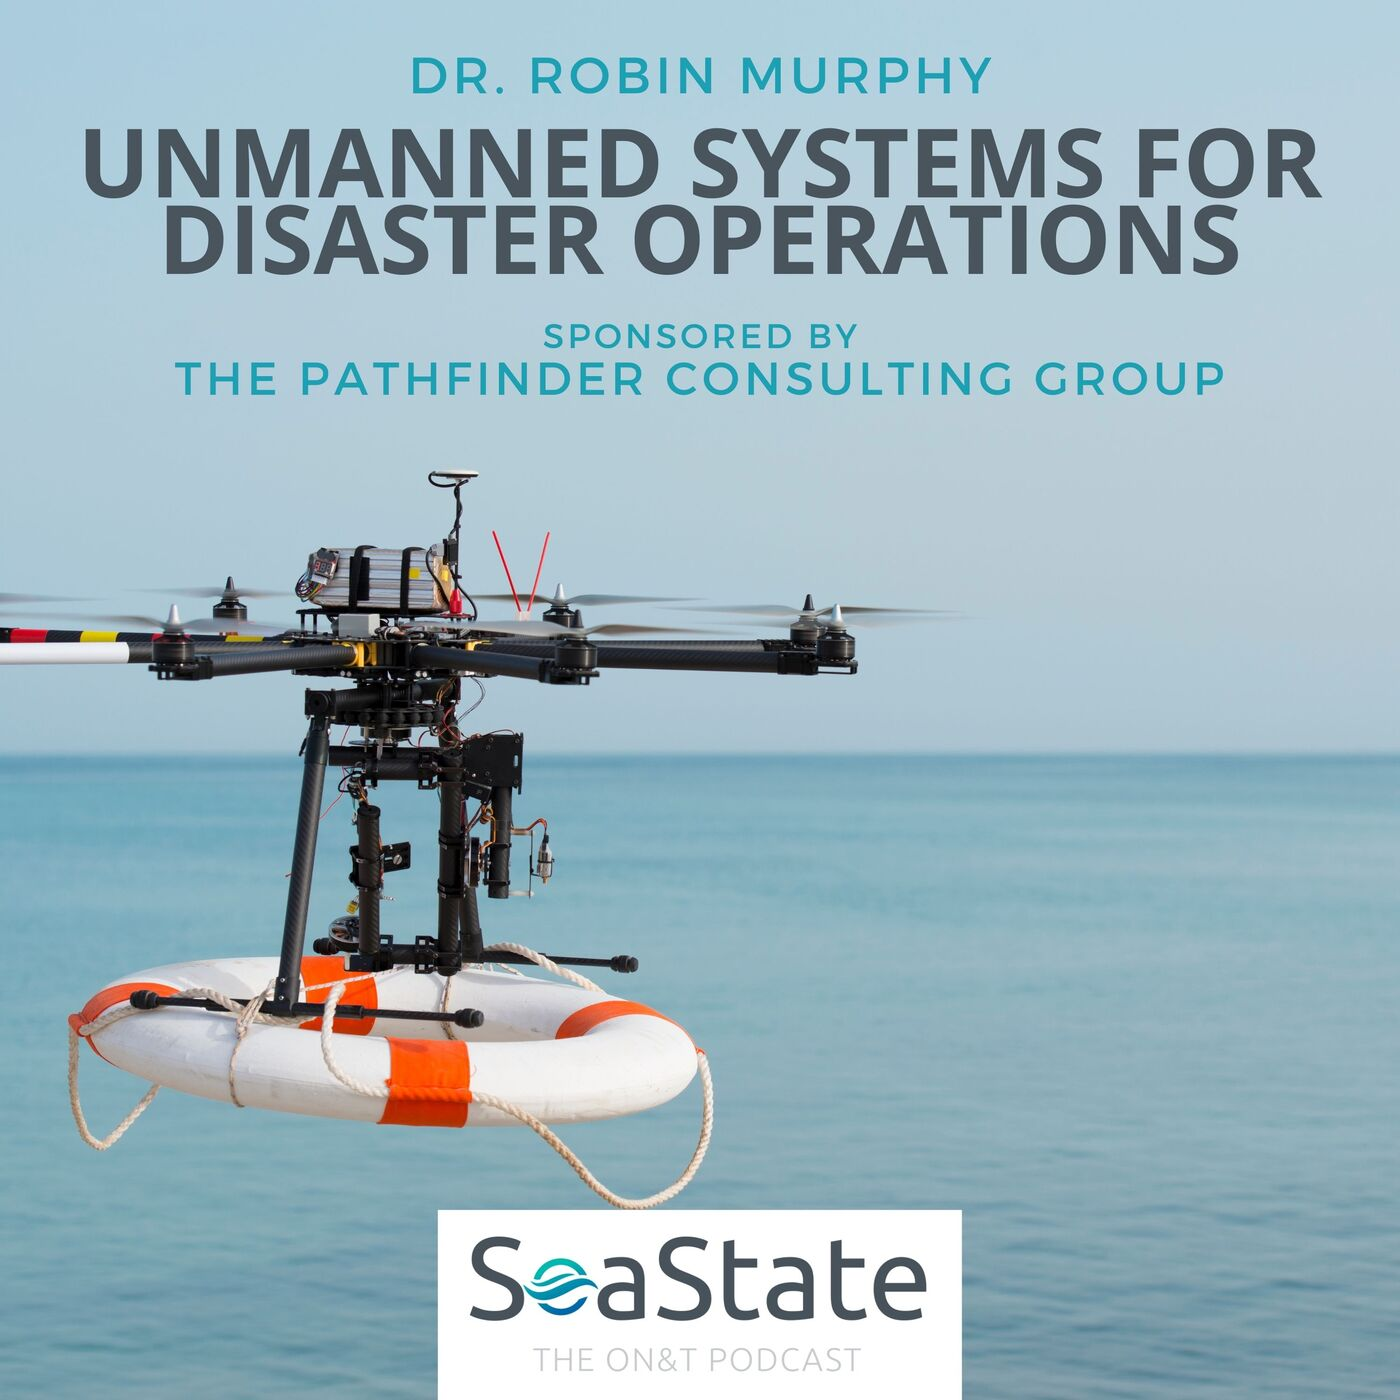 Dr. Robin Murphy: Unmanned Systems For Disaster Operations